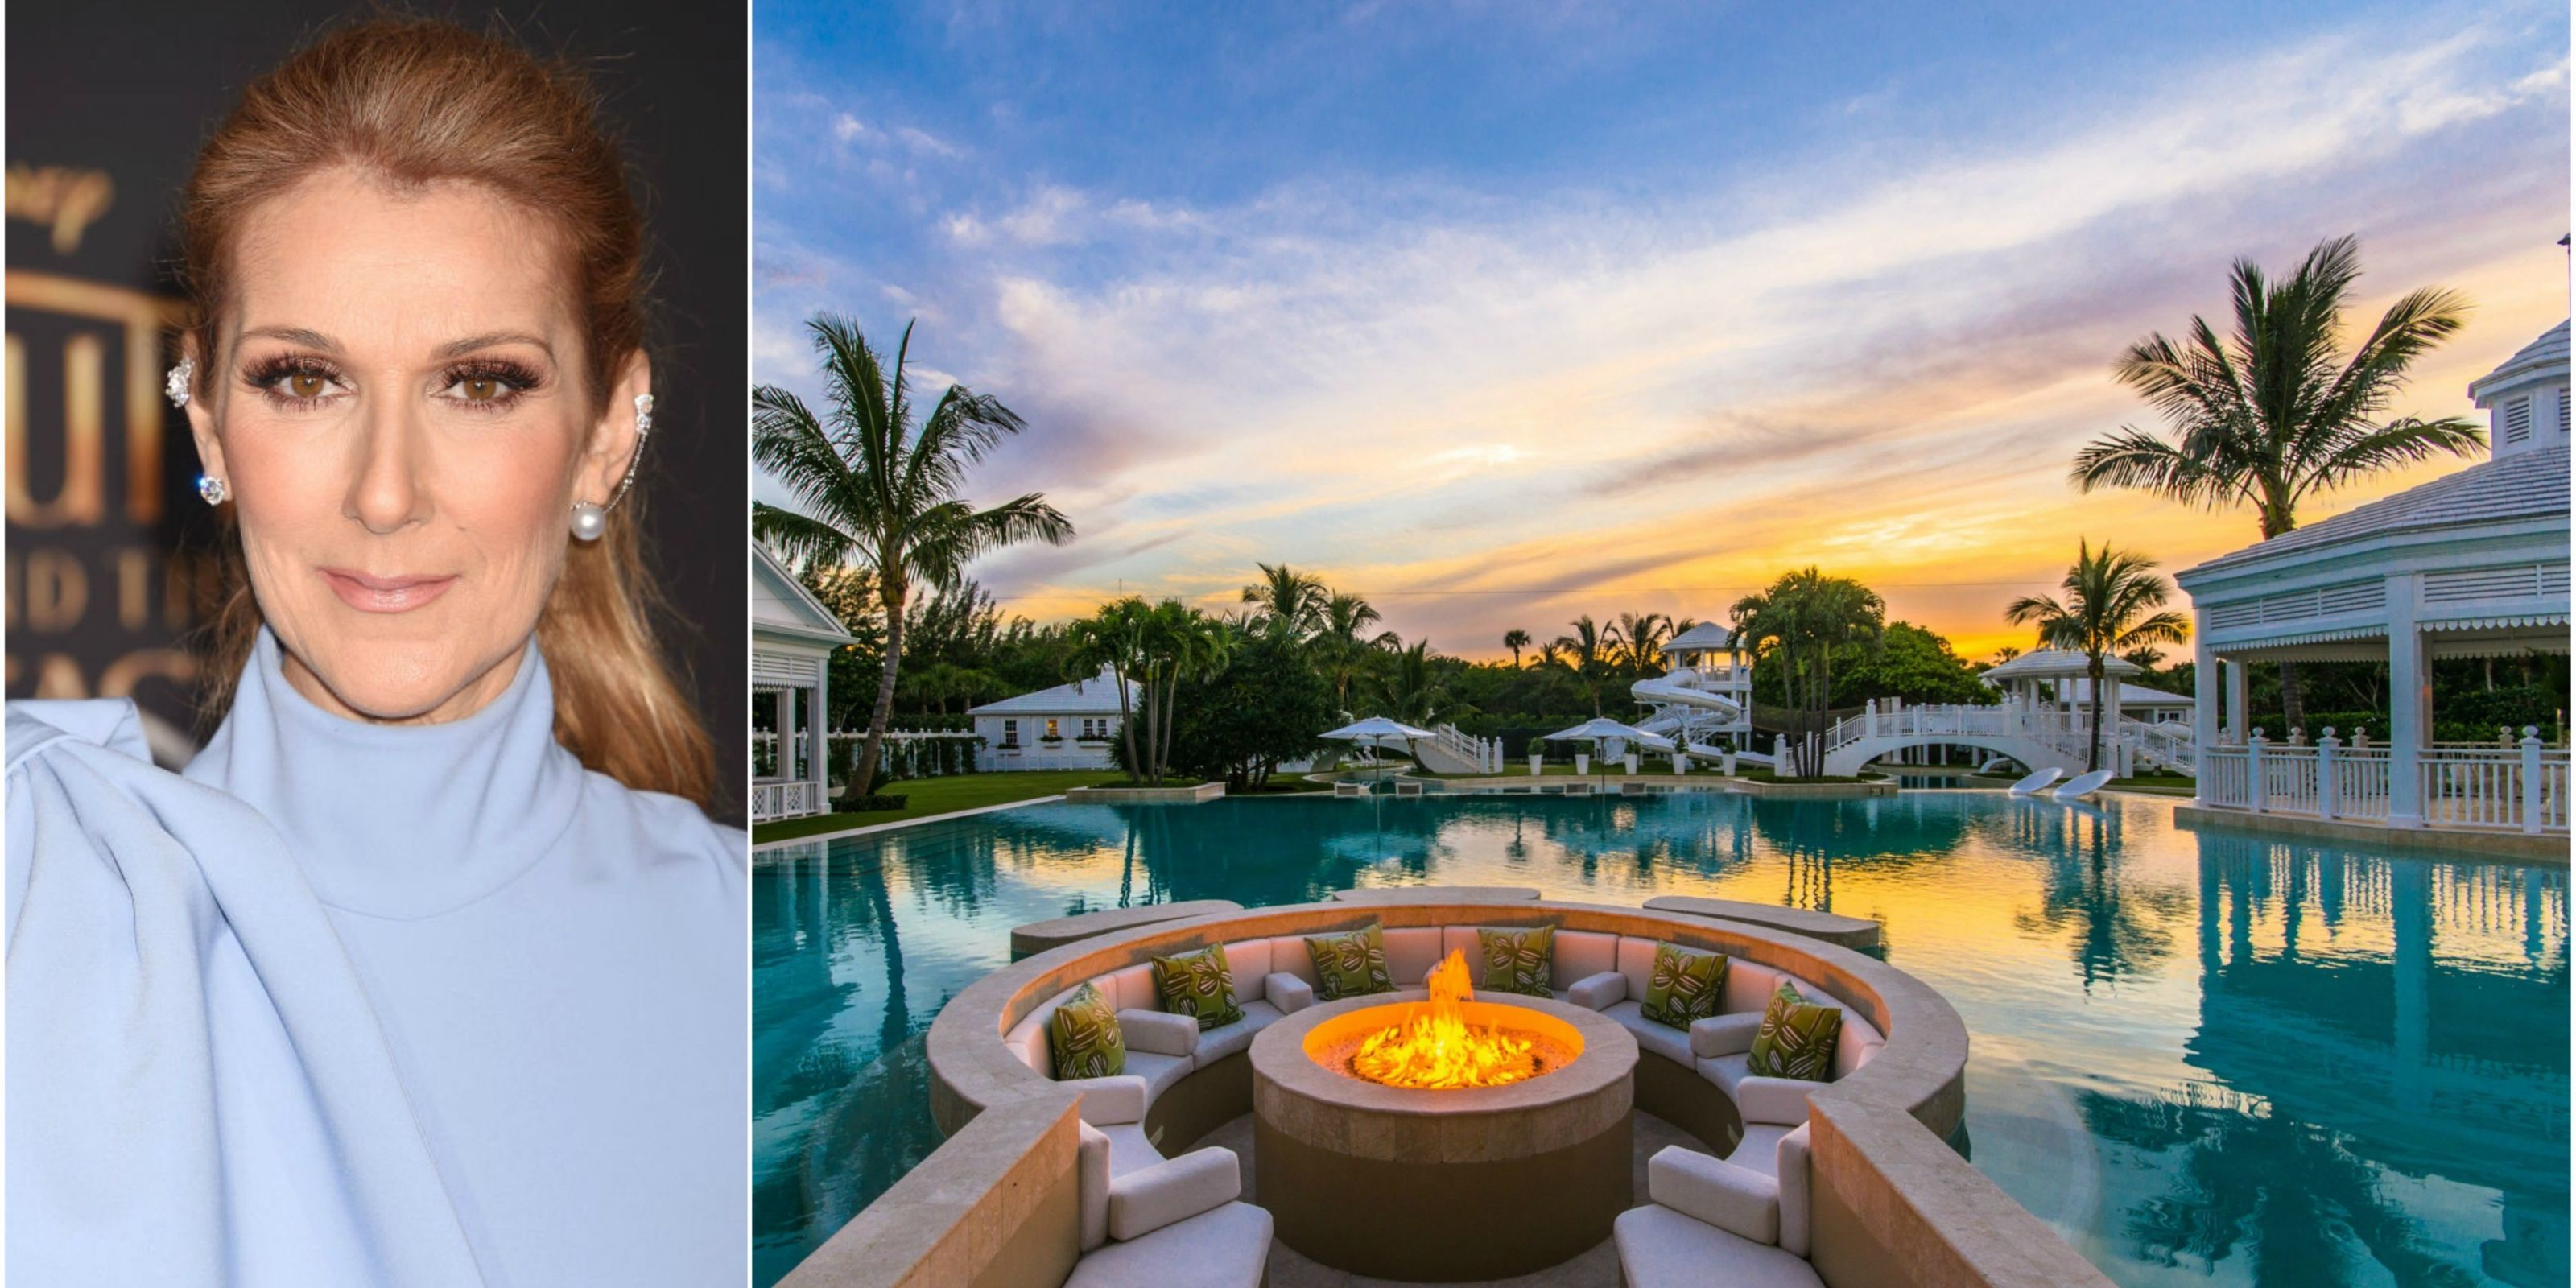 Exceptionnel Celine Dionu0027s Florida Mansion In Jupiter Island Has Been Sold After Four  Years On The Market